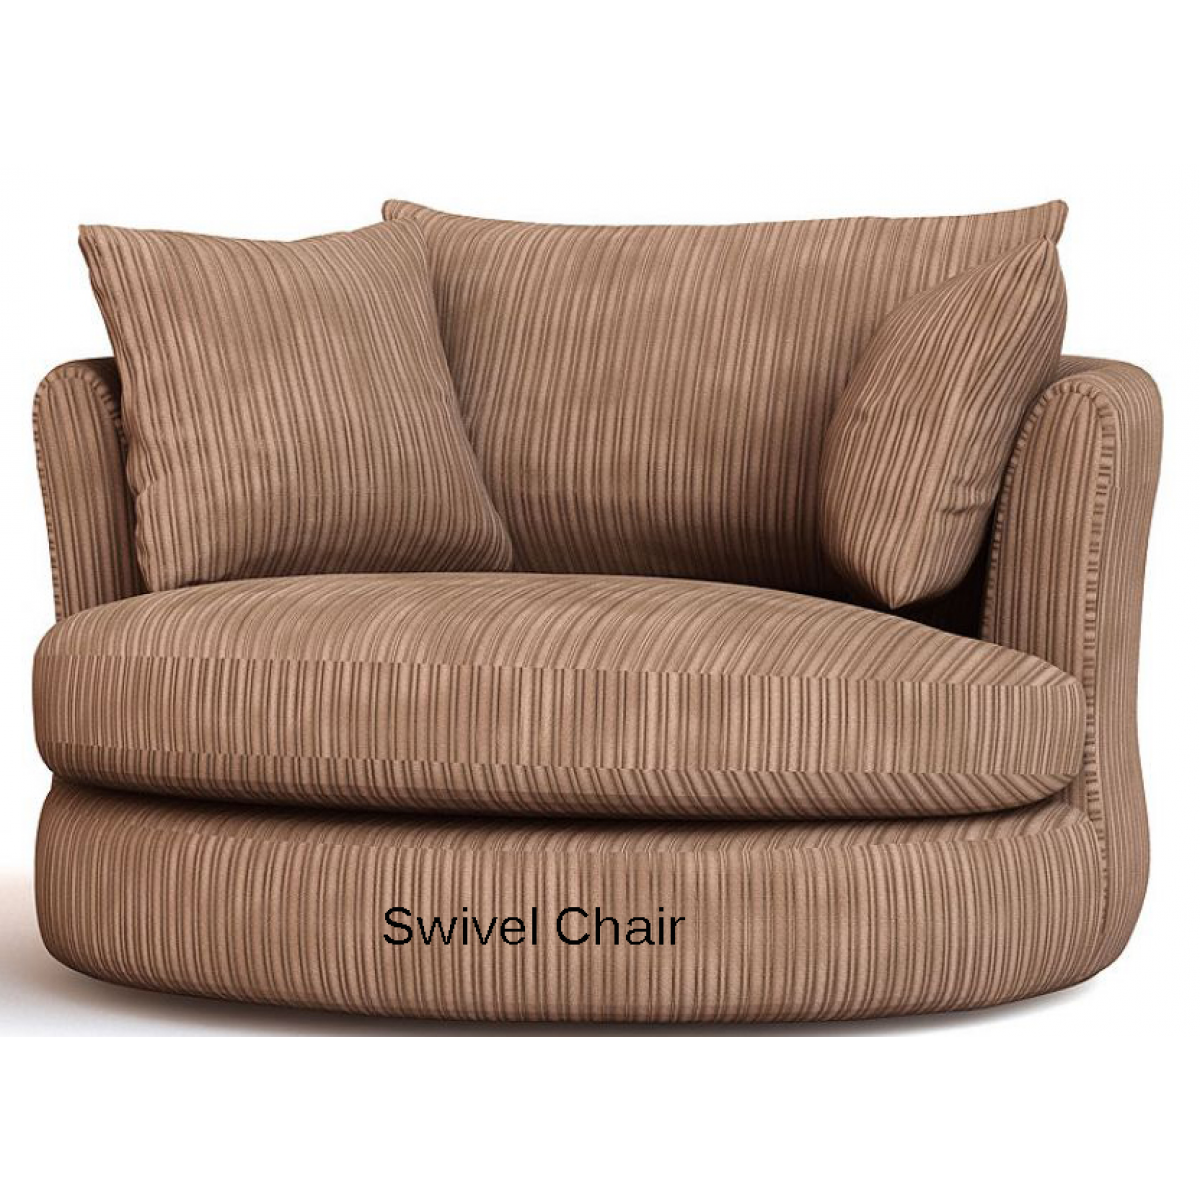 Furniture Mesmerizing Cuddle Chair From Walmart And For Your